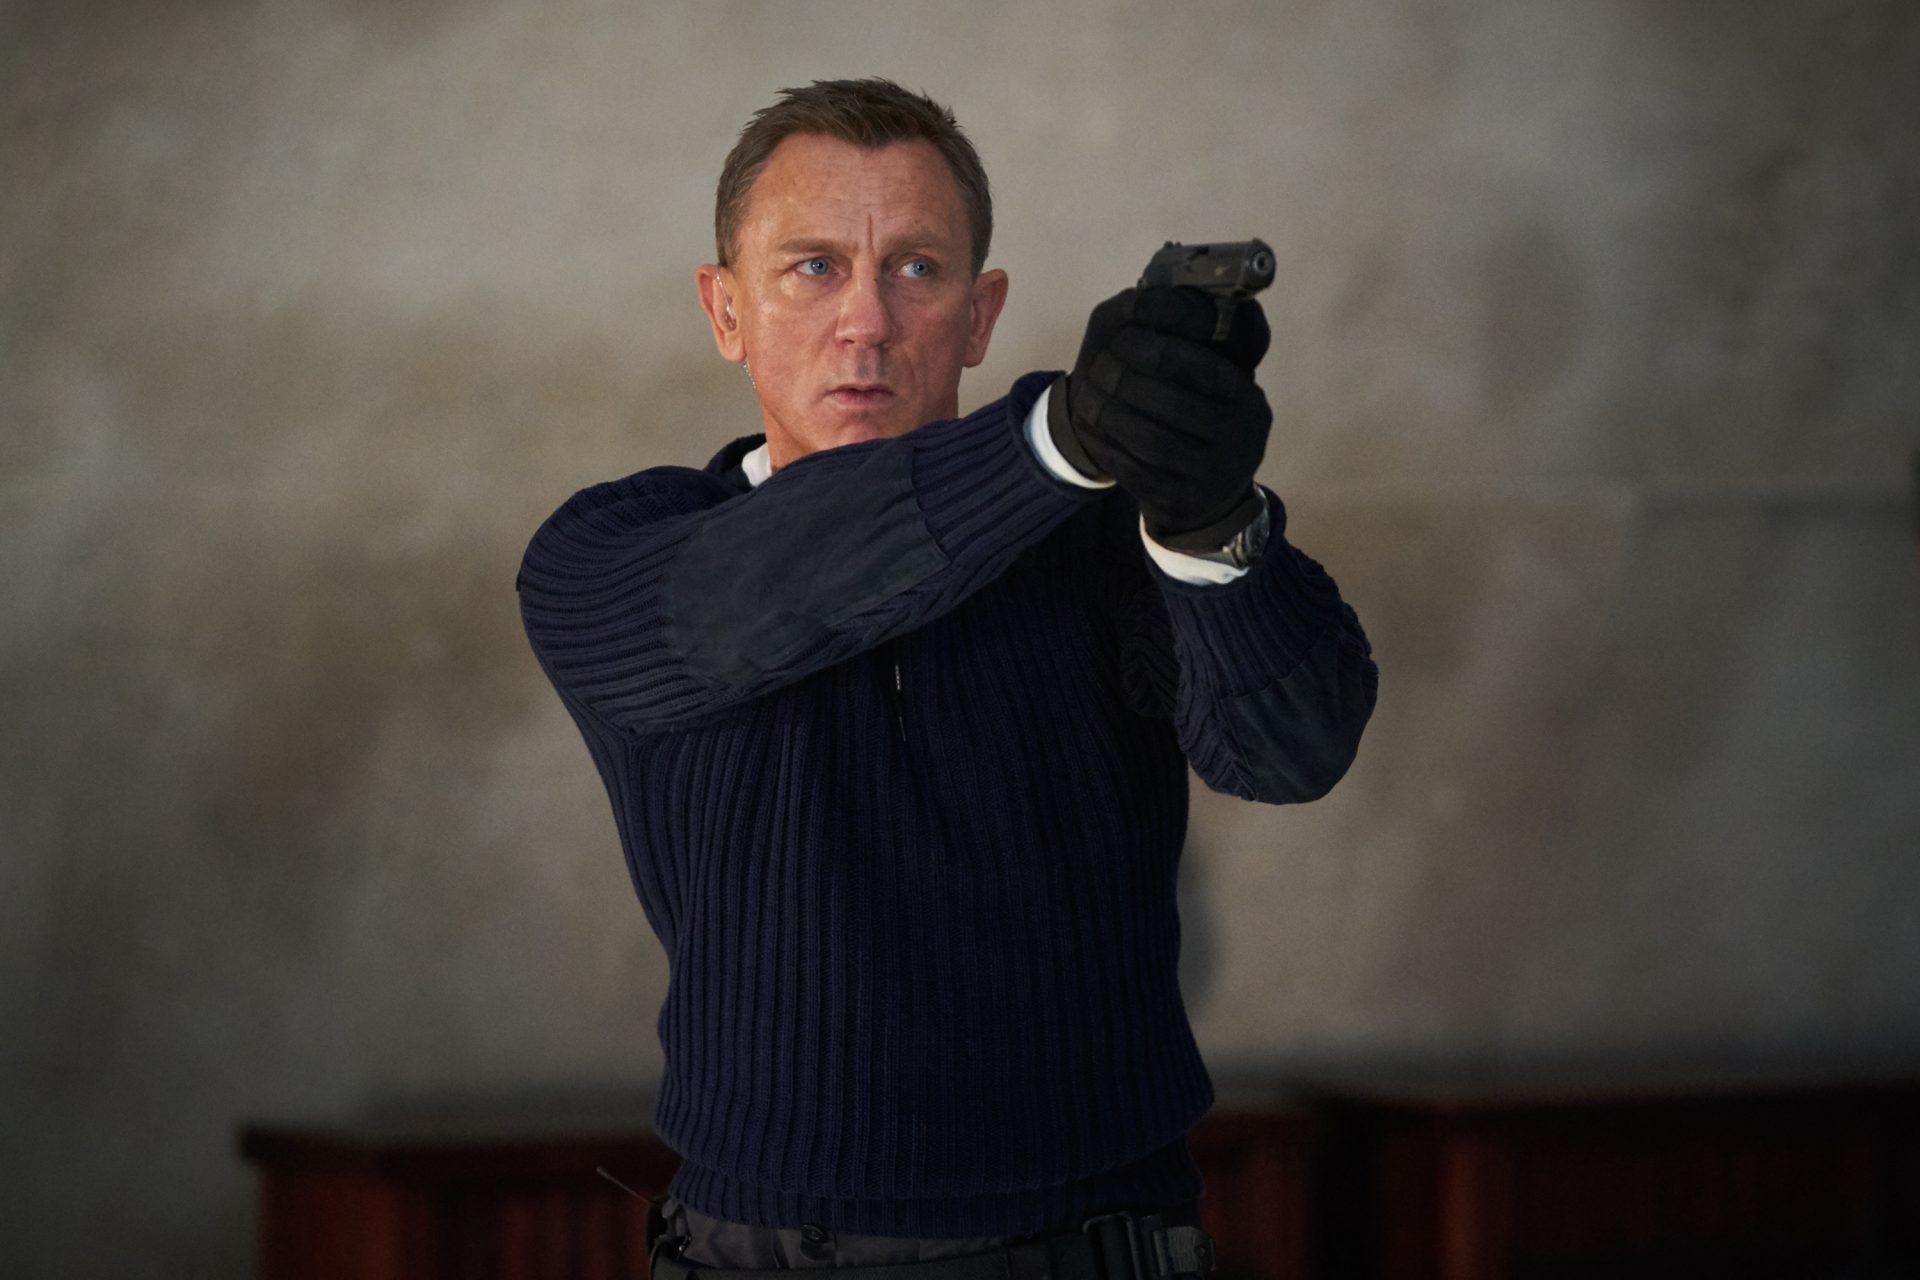 Daniel Craig playing James Bond in the new Bond film No Time To Die. Photograph:  Nicola Dove/PA Wire/PA Images.